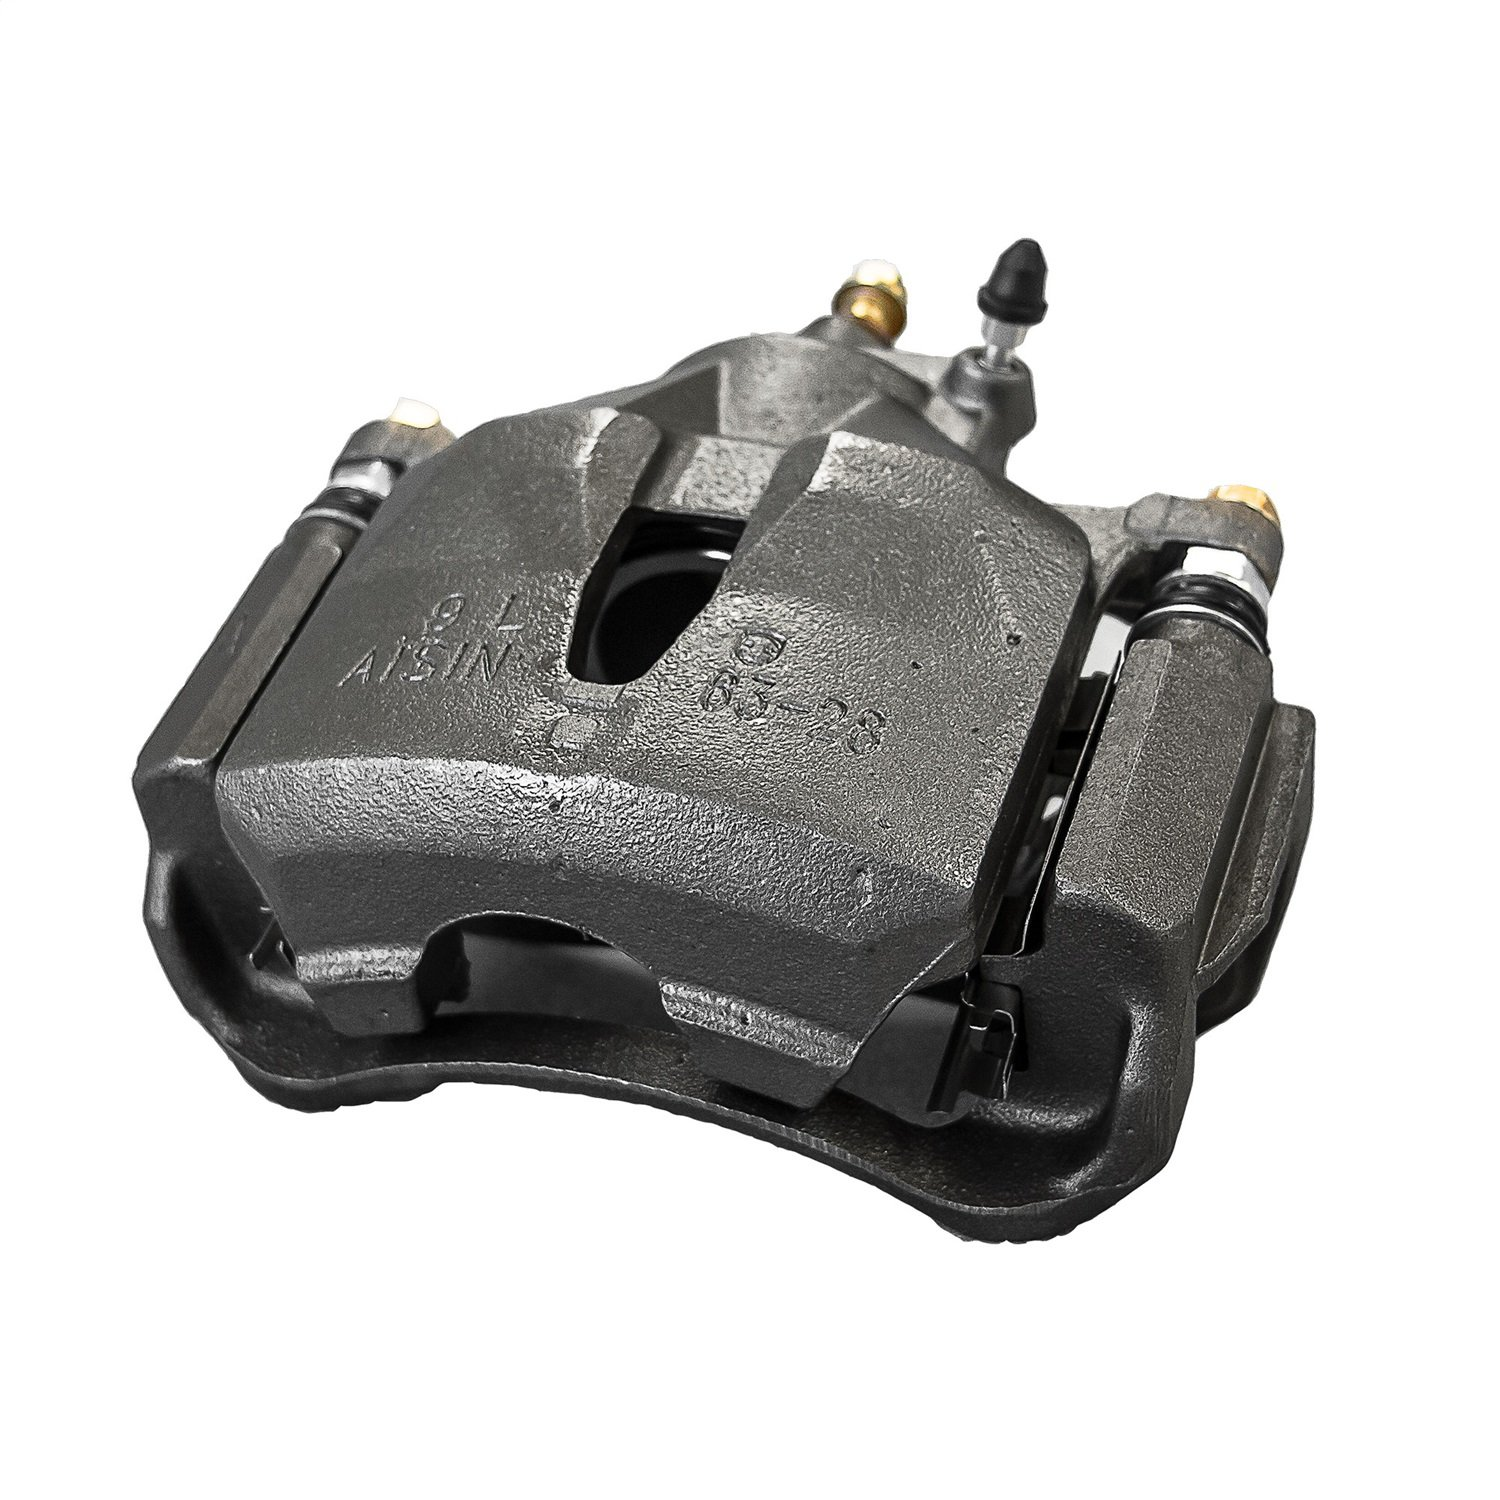 Power Stop L4949 Front Autospecialty OE Replacement Brake Caliper